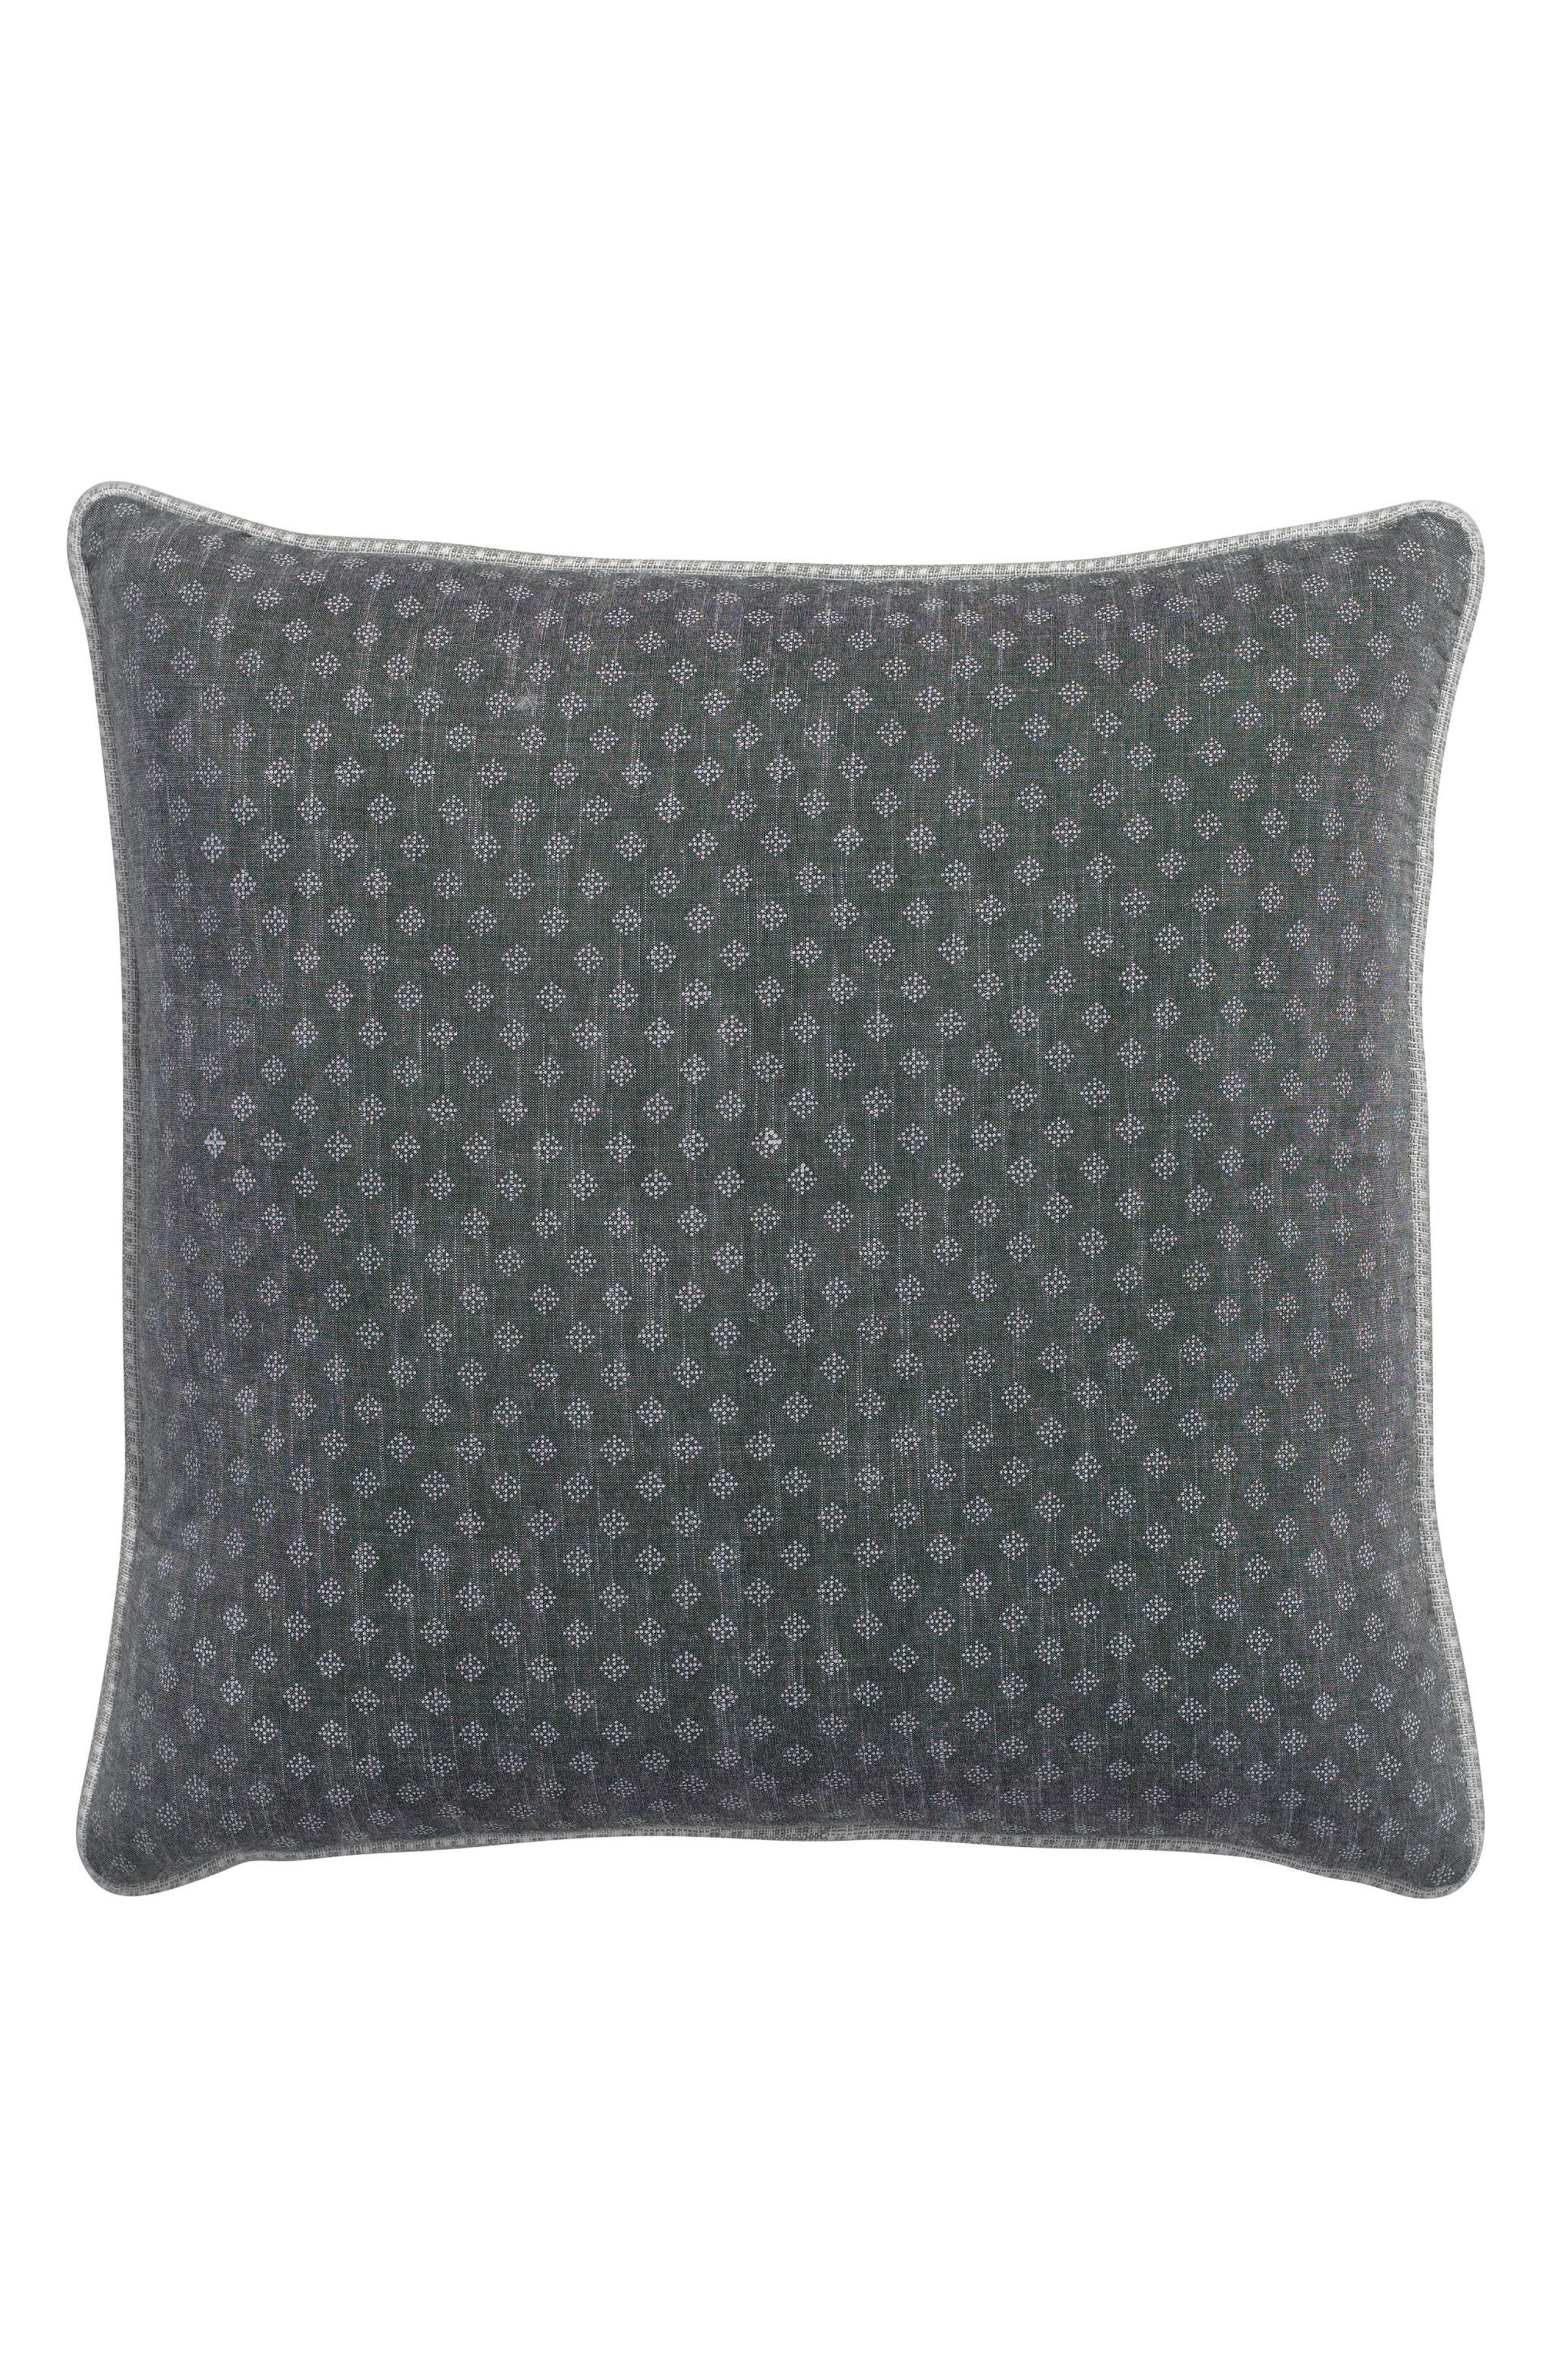 Park Ave Square Printed Dot Organic Cotton Accent Pillow,                             Main thumbnail 1, color,                             Dark Grey